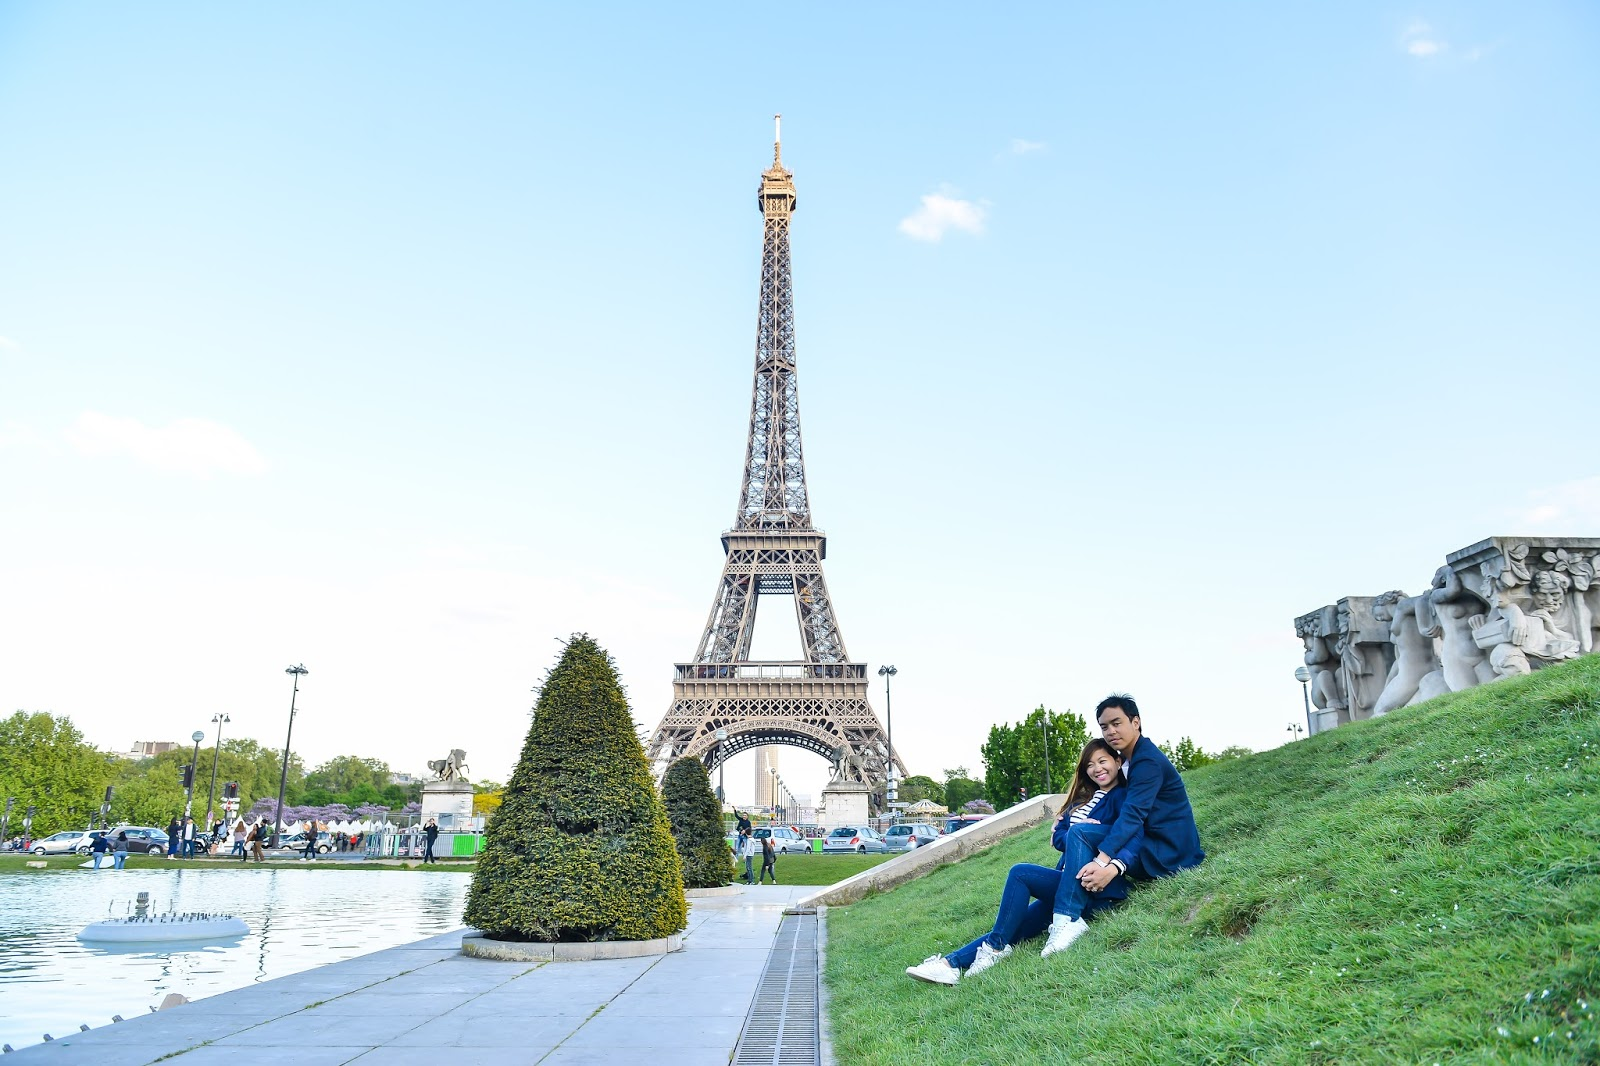 Walk with Cham: How to Apply for a Schengen Visa at the French